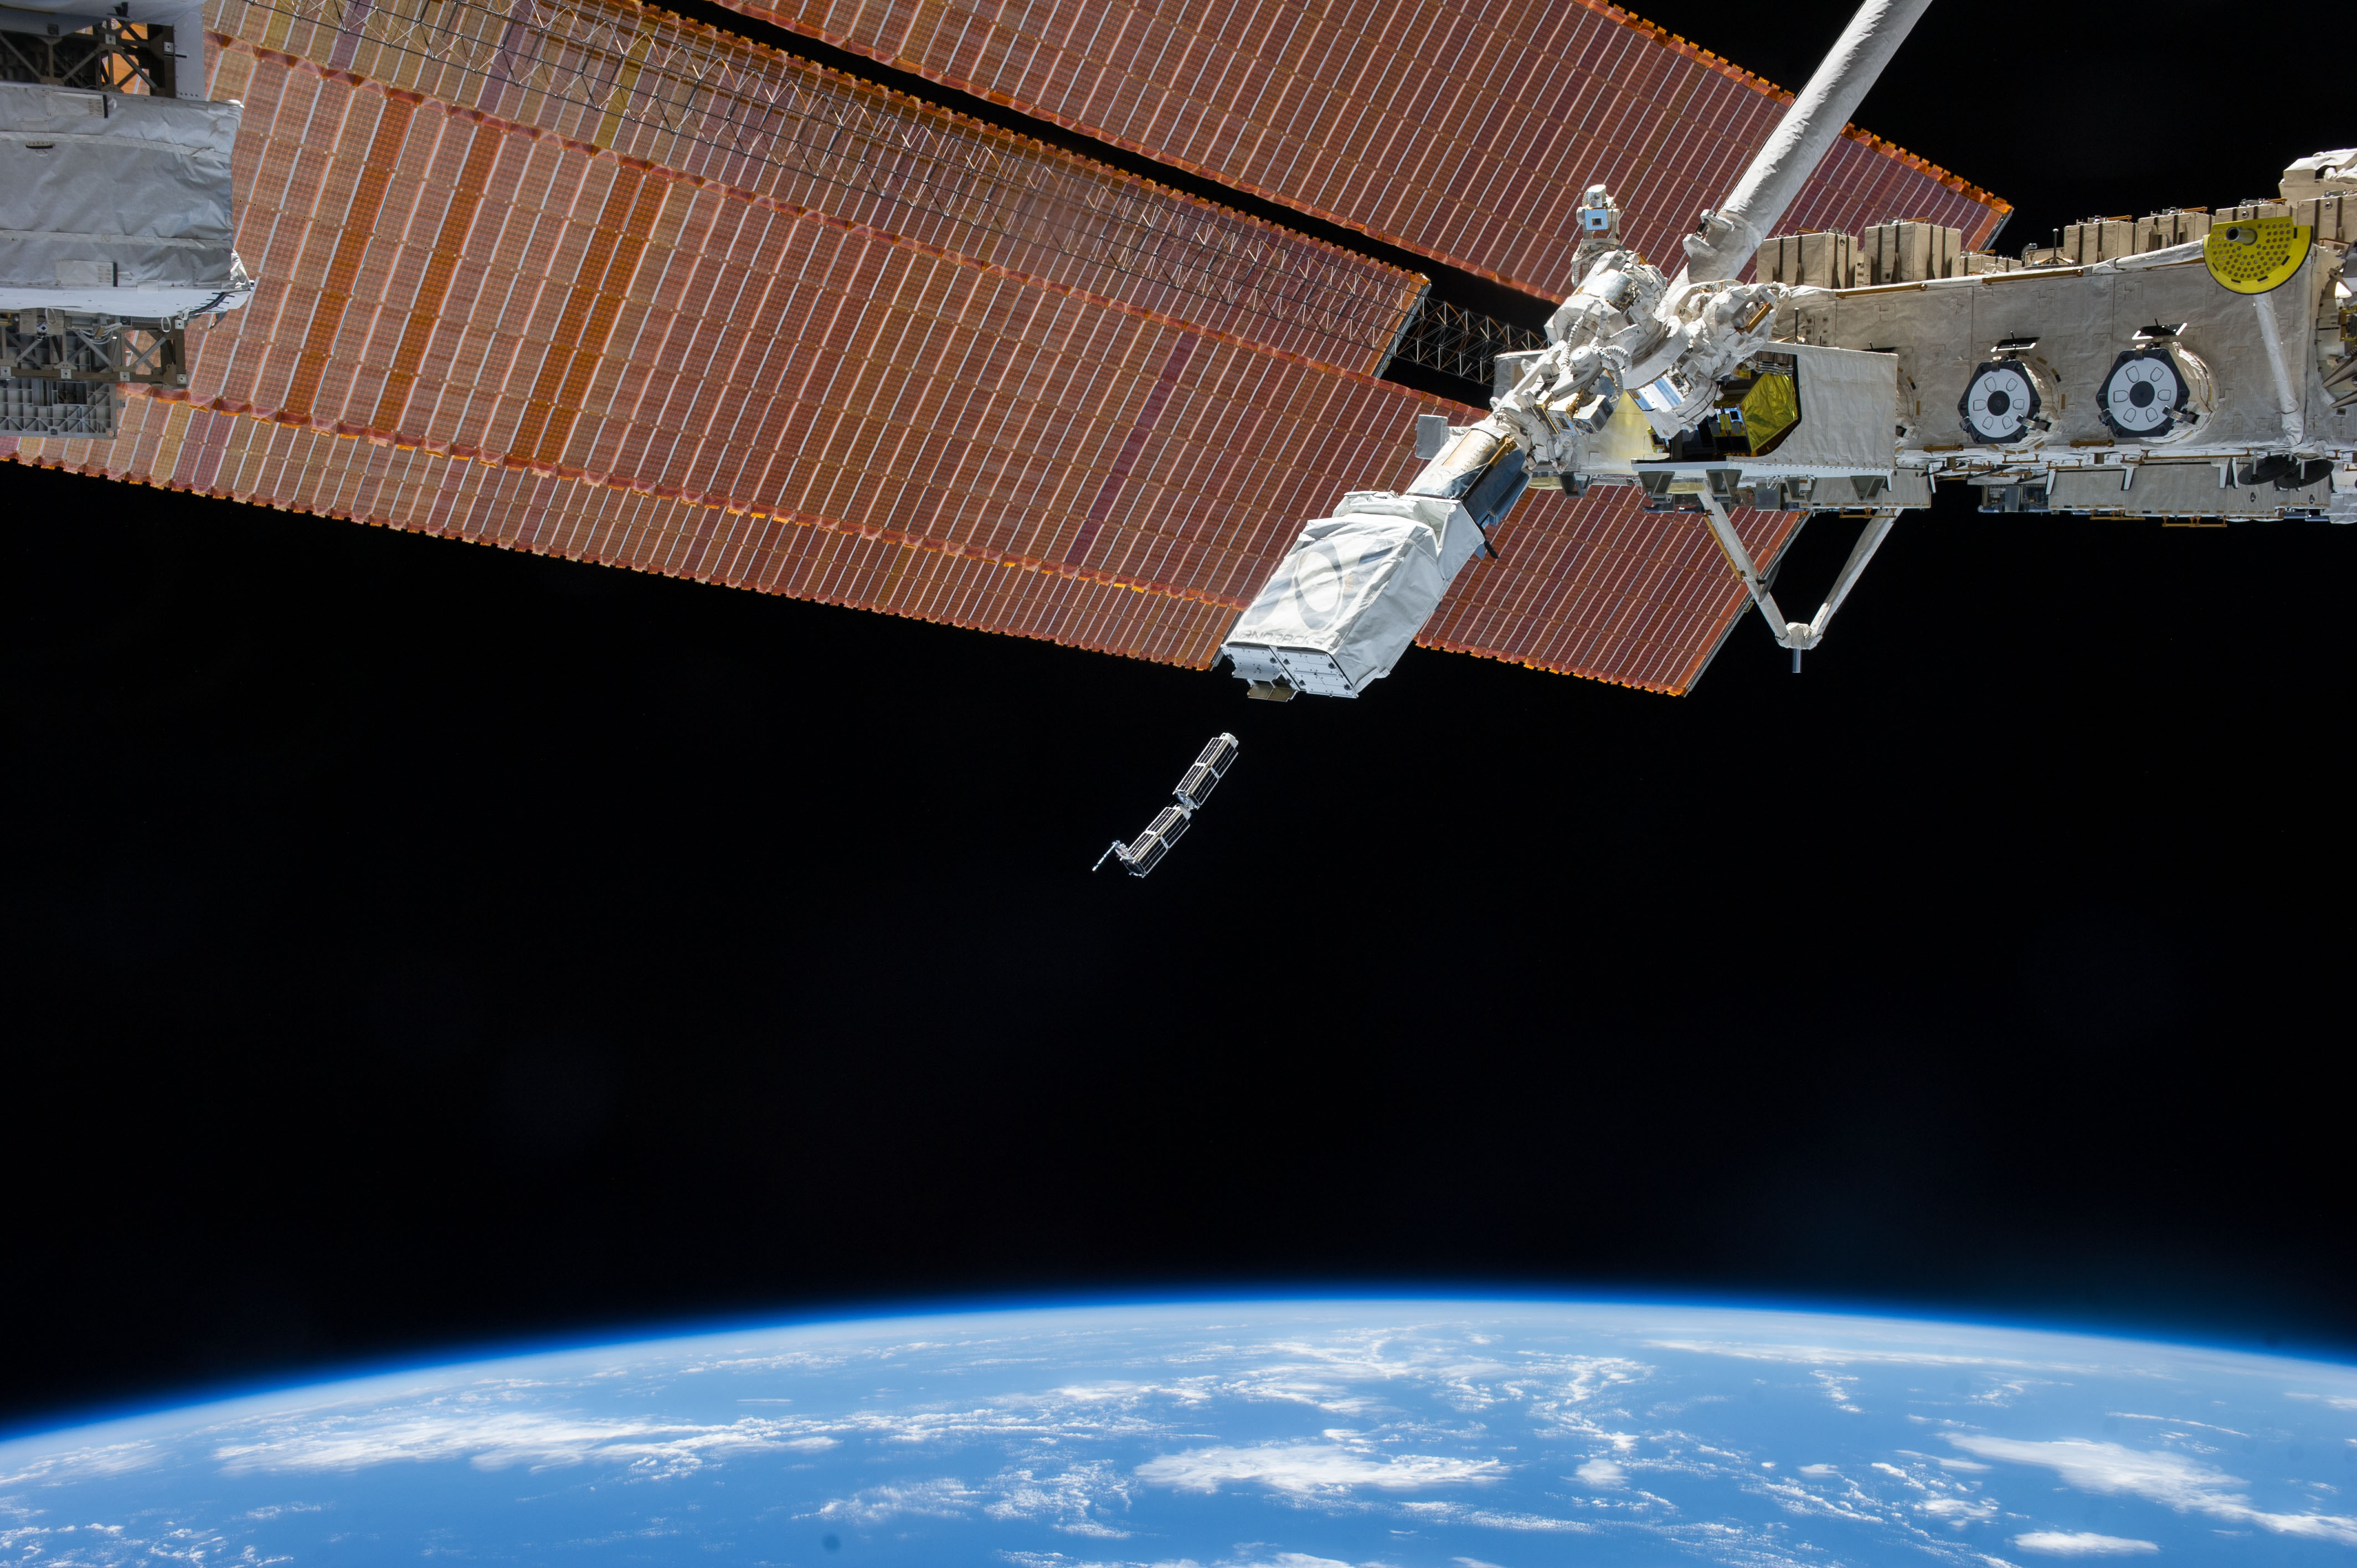 When Doves Fly: Swarm Of Tiny Satellites Shot From Space ...